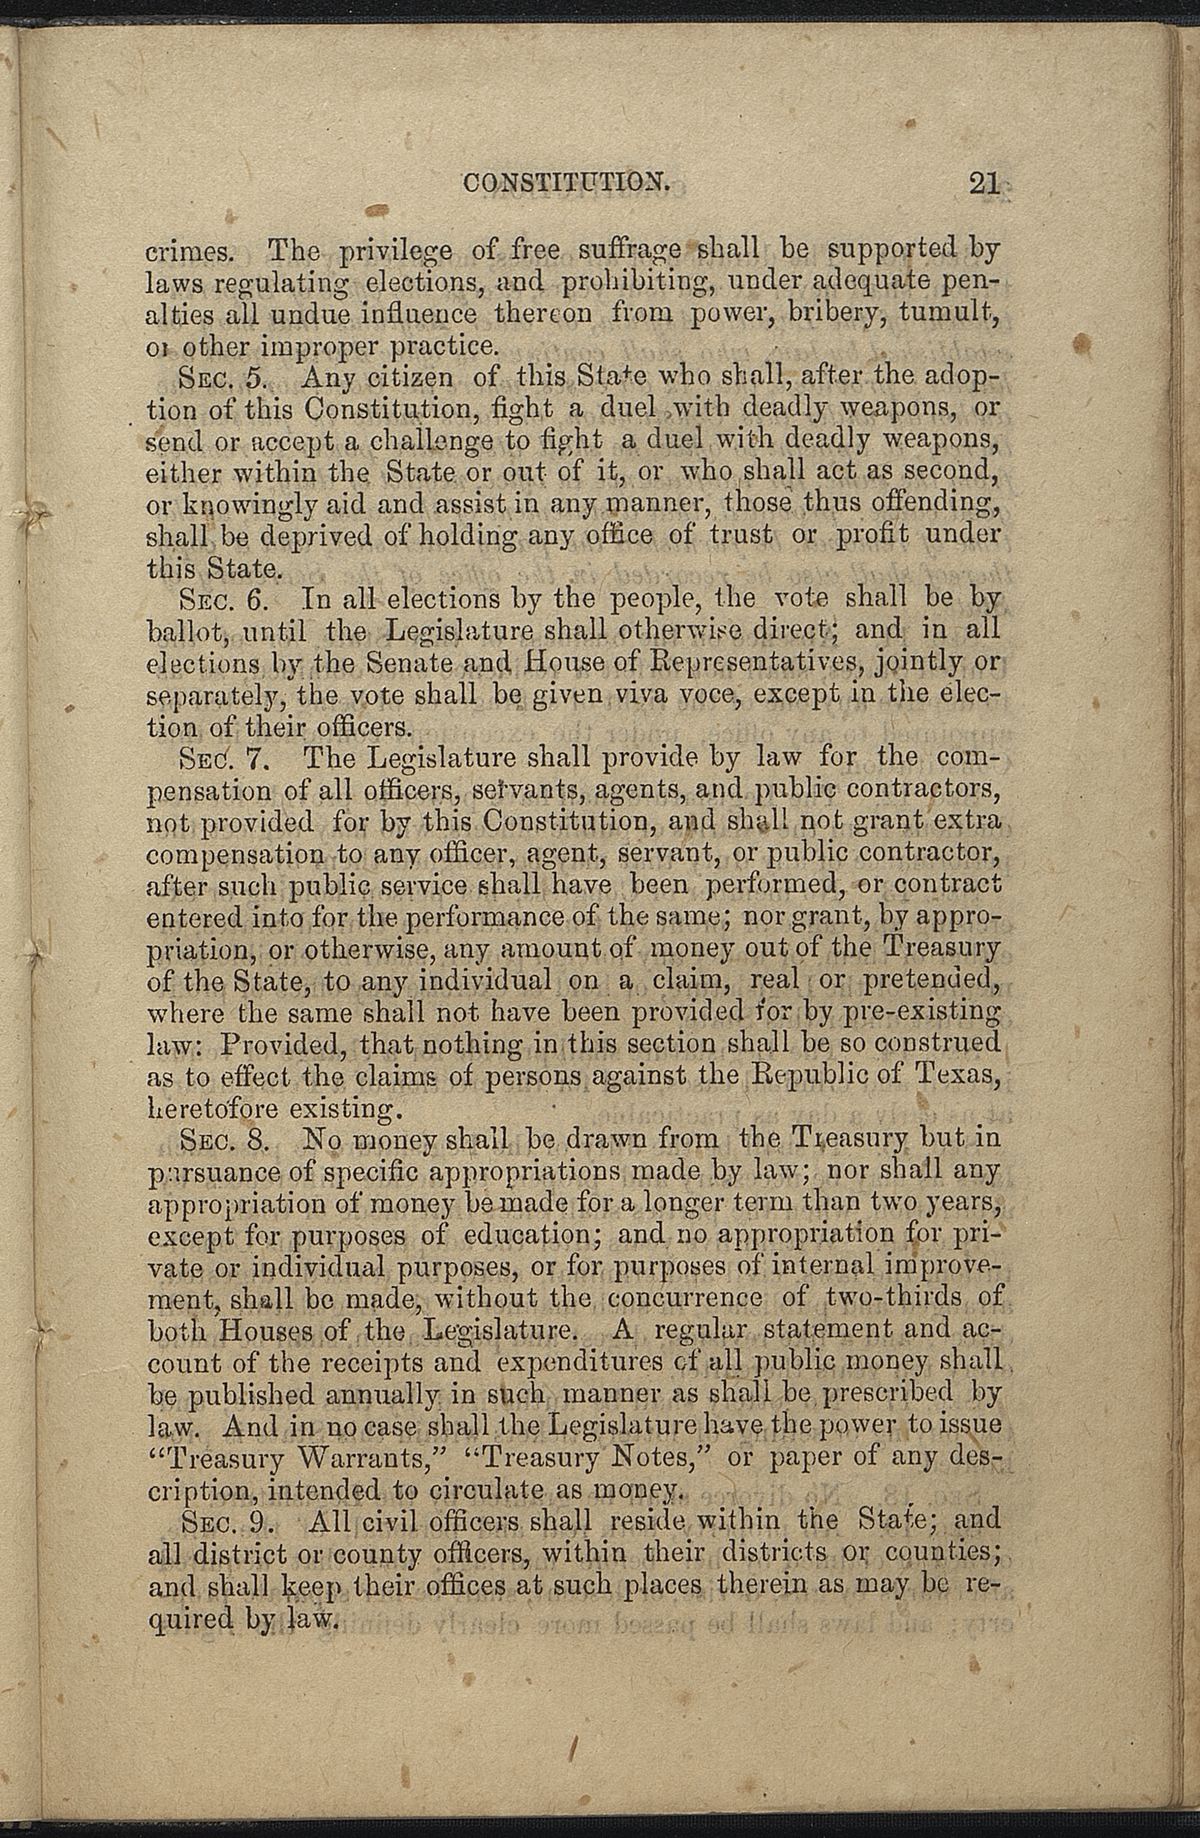 Article VII, Sections 4-9